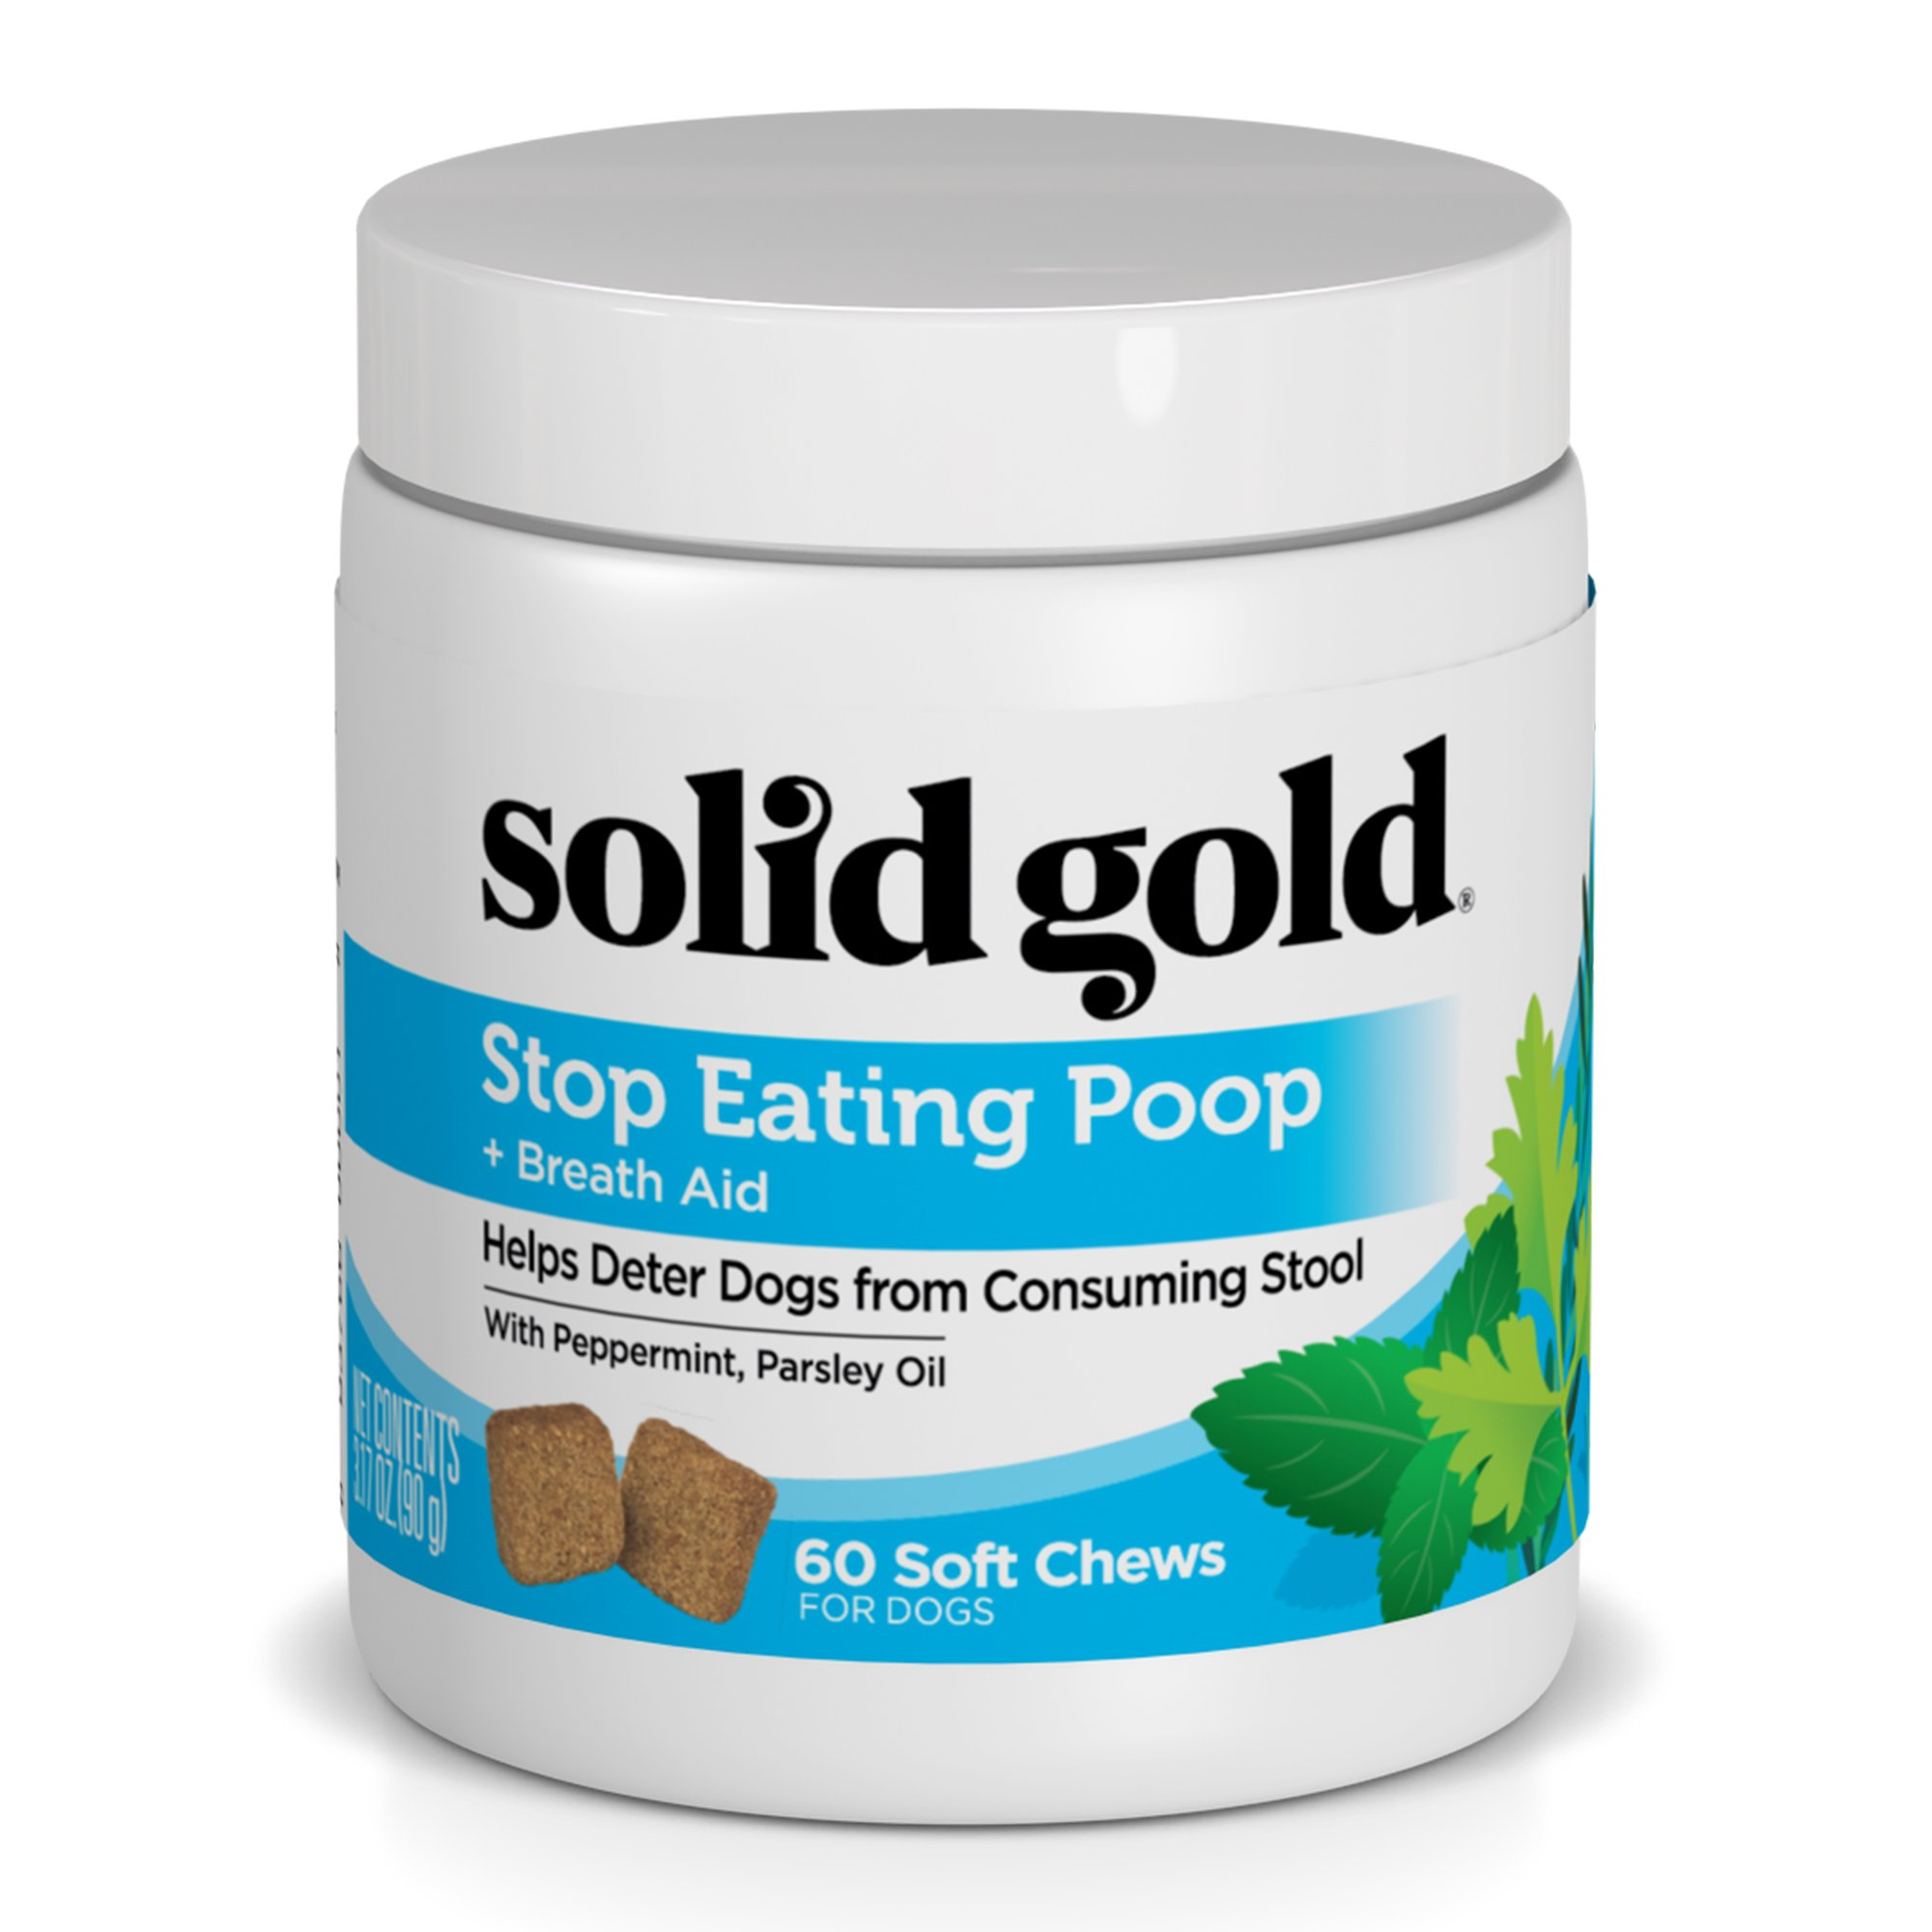 Solid Gold Stop Eating Poop for dogs with Coprophagia; Natural, Grain-Free Supplement Chews with Peppermint, 60 ct